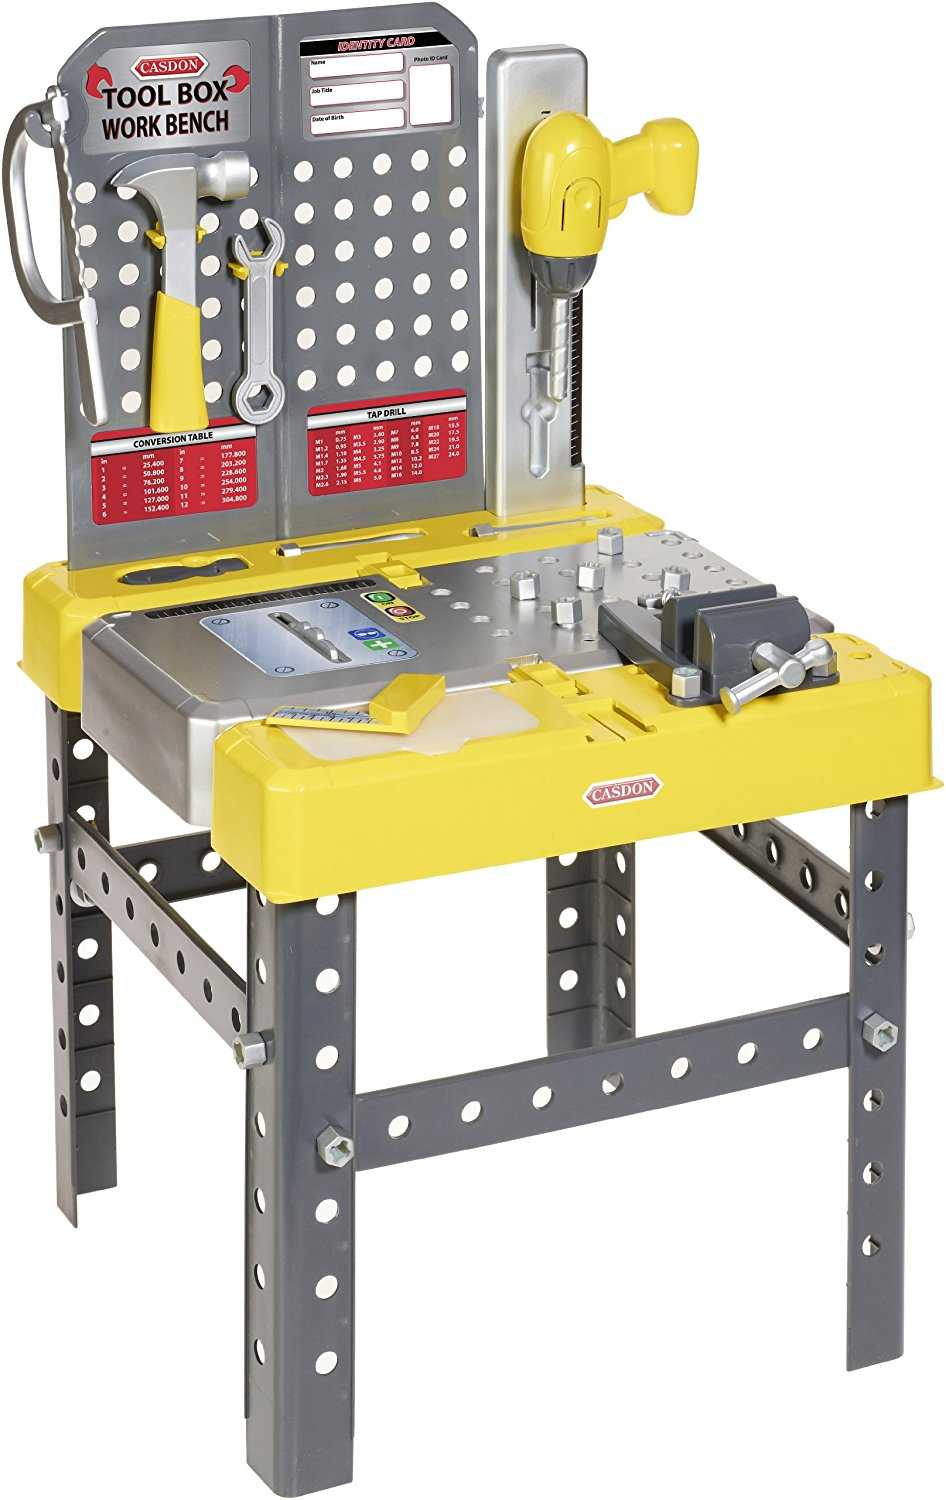 Casdon Tool Box Work Bench